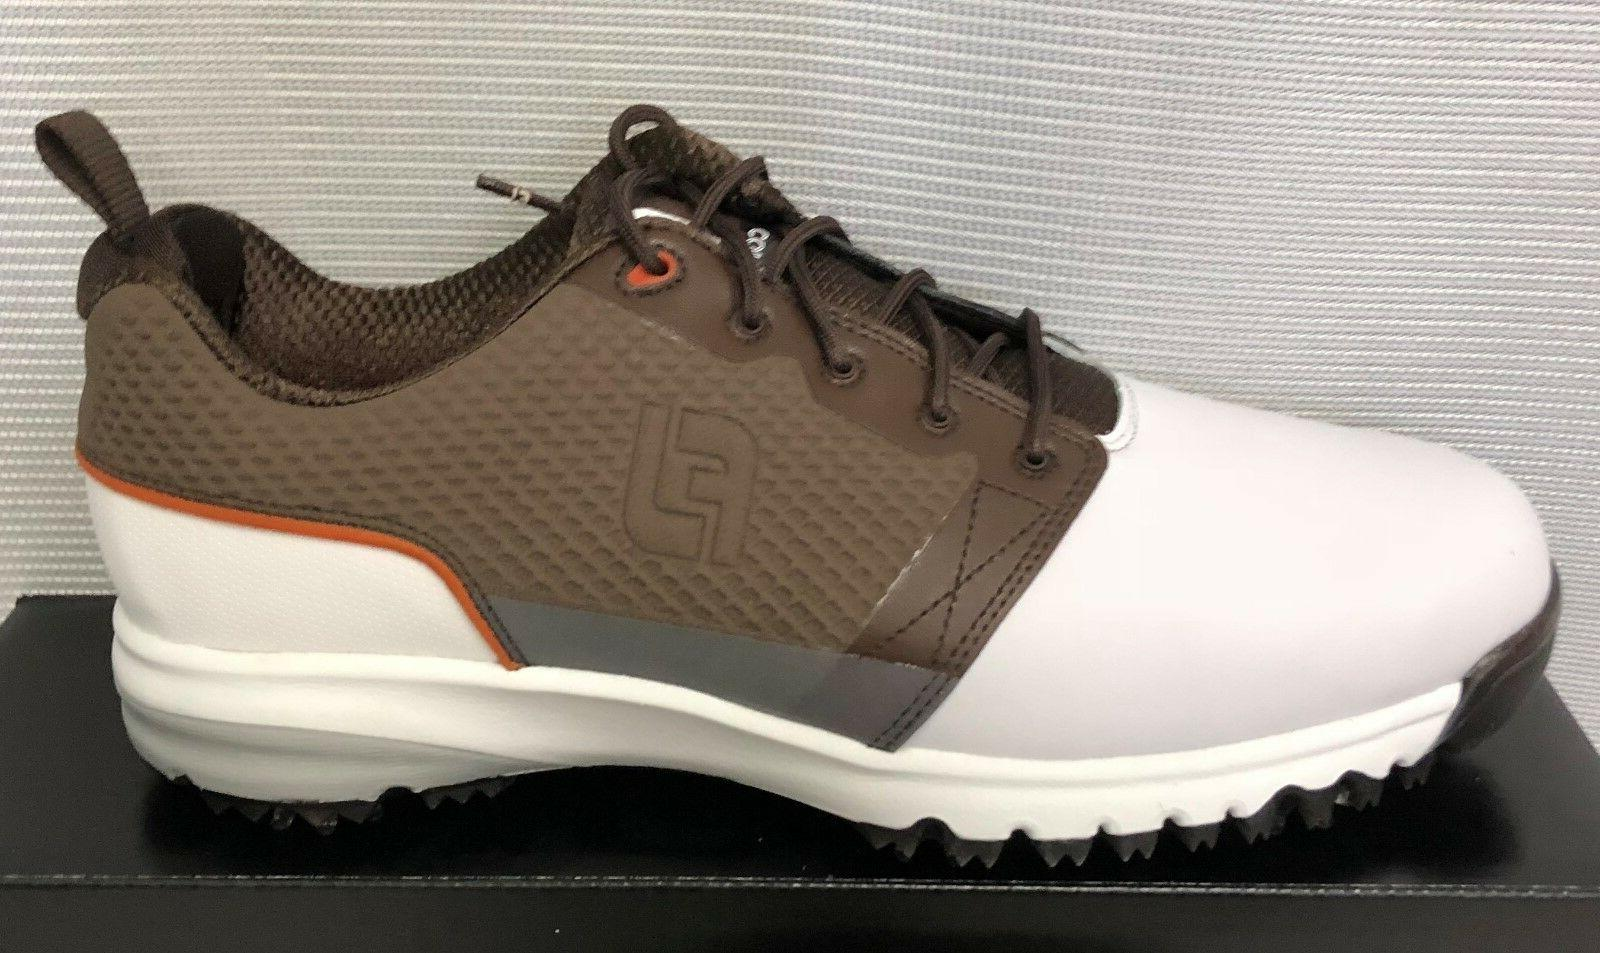 FootJoy Mens Shoes - White Brown - #54096 - New